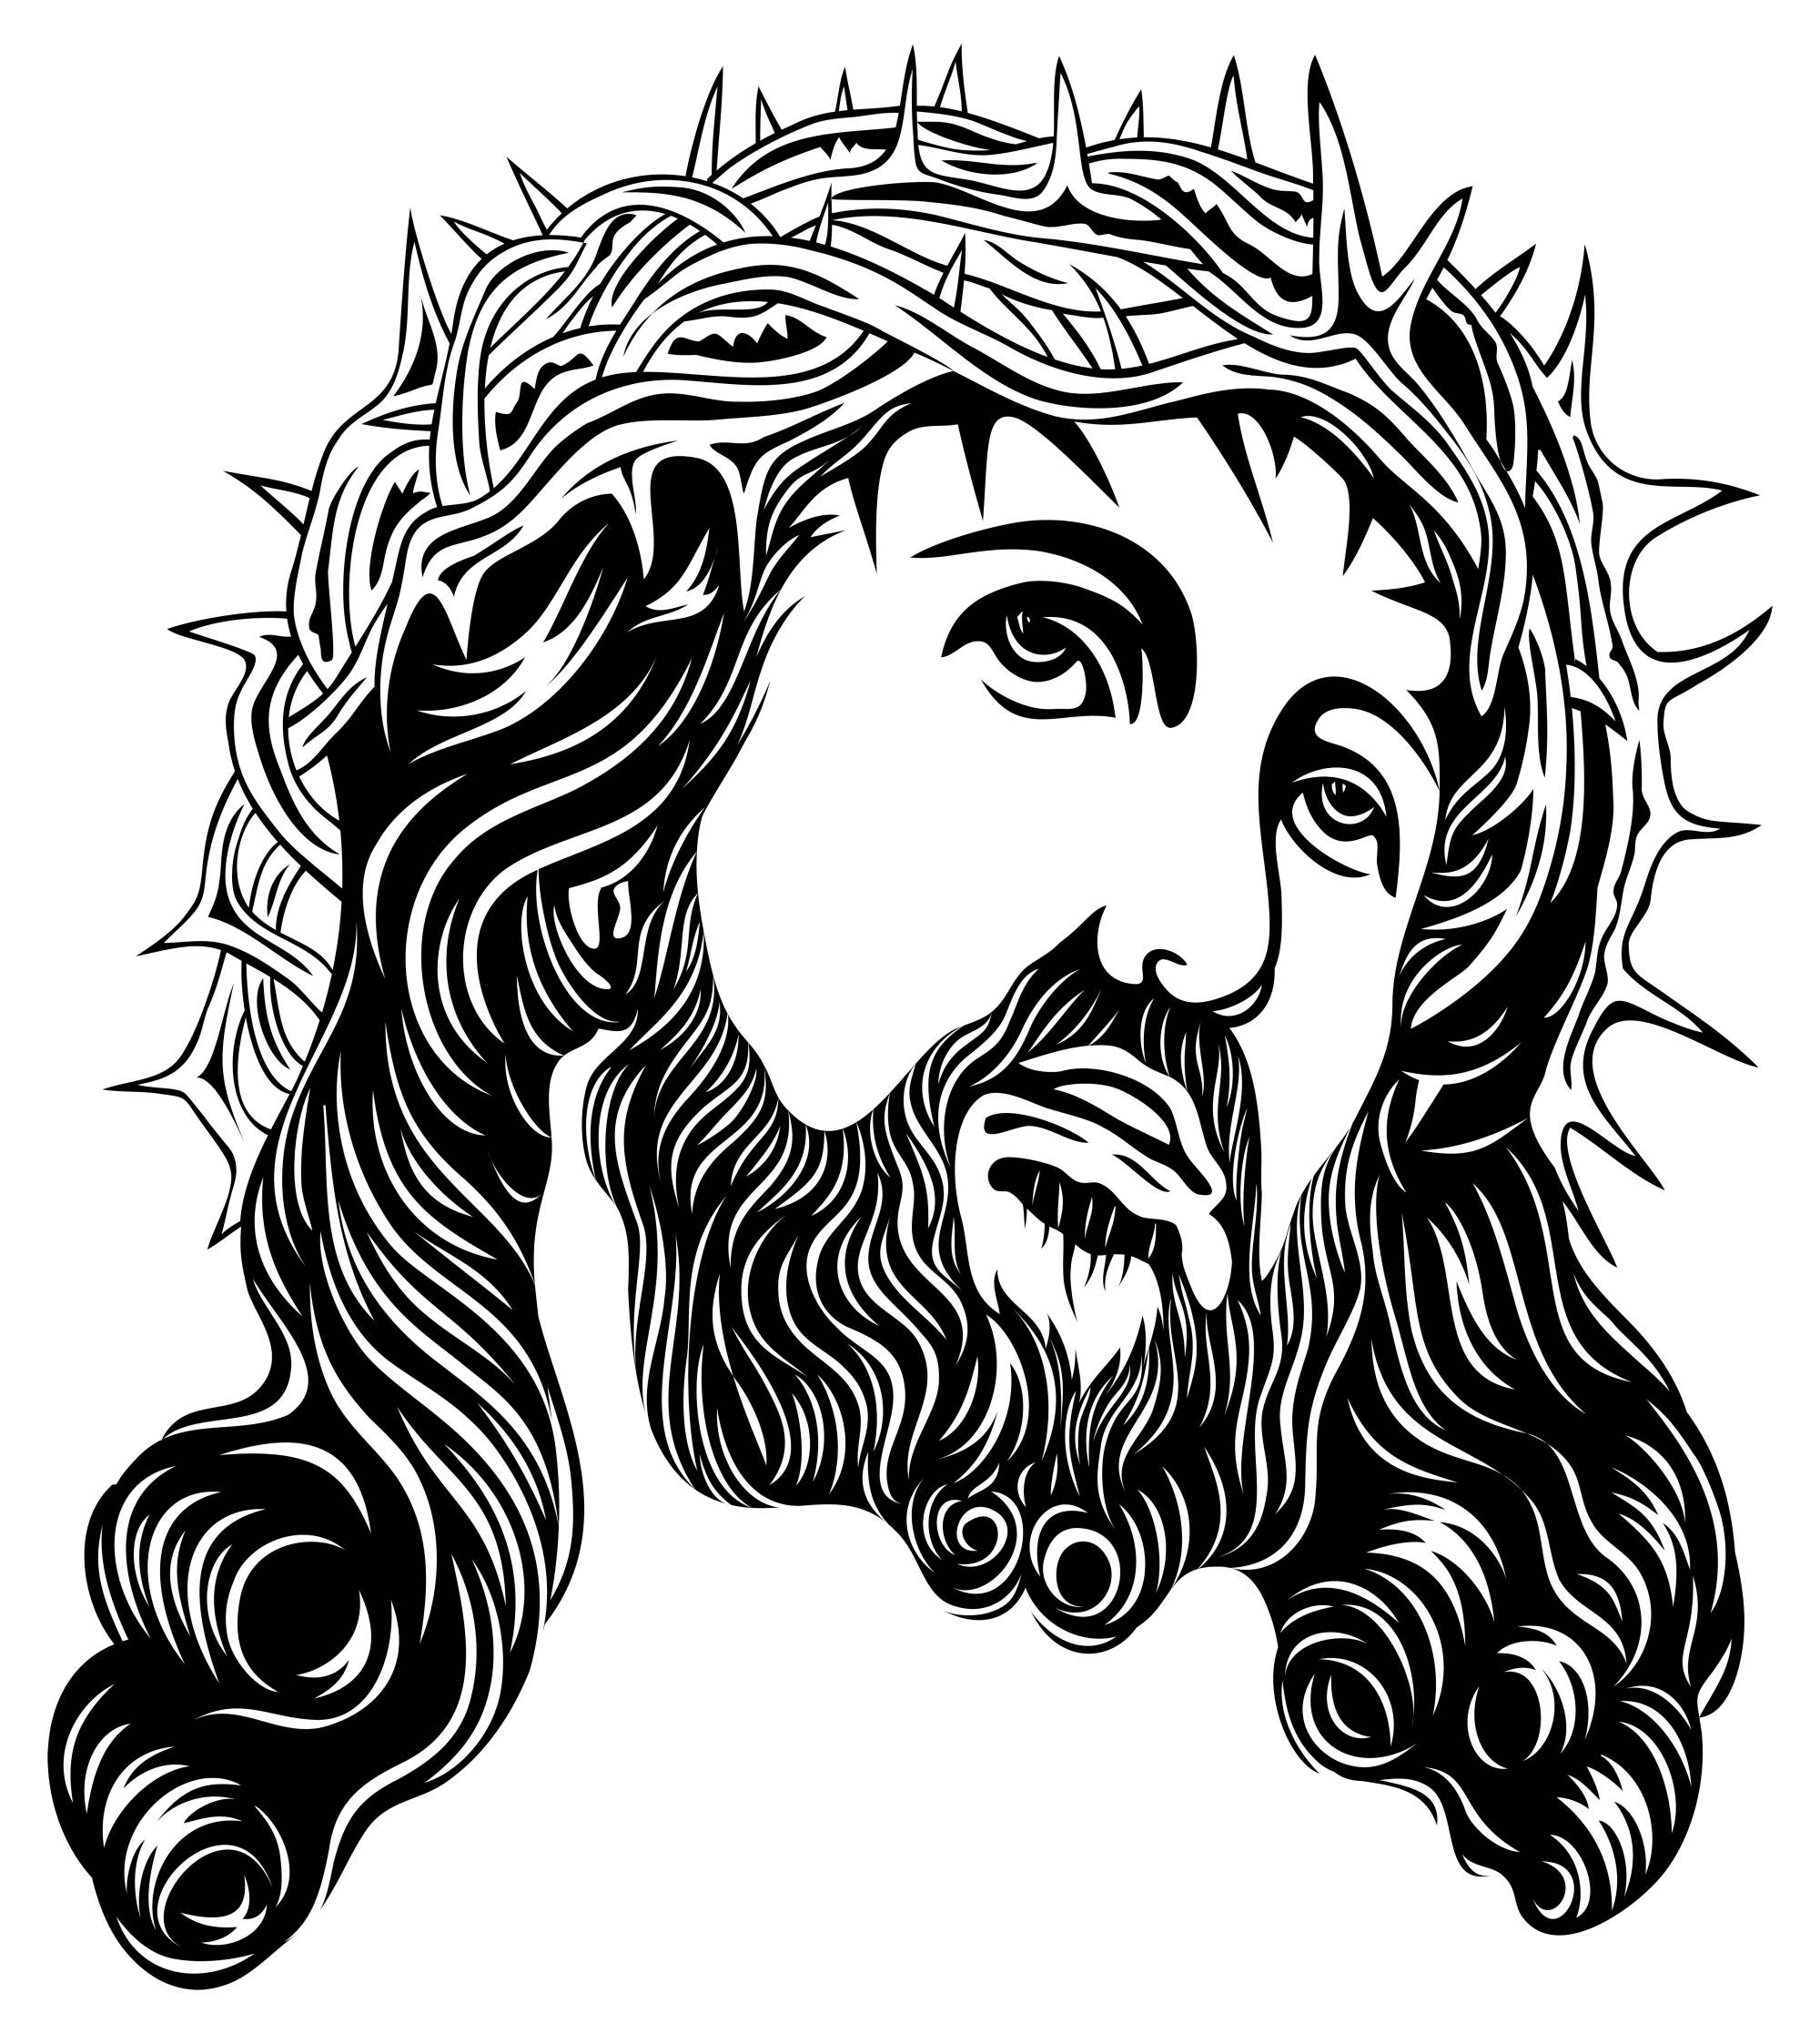 hight resolution of jesus christ with crown of thorns png clip art